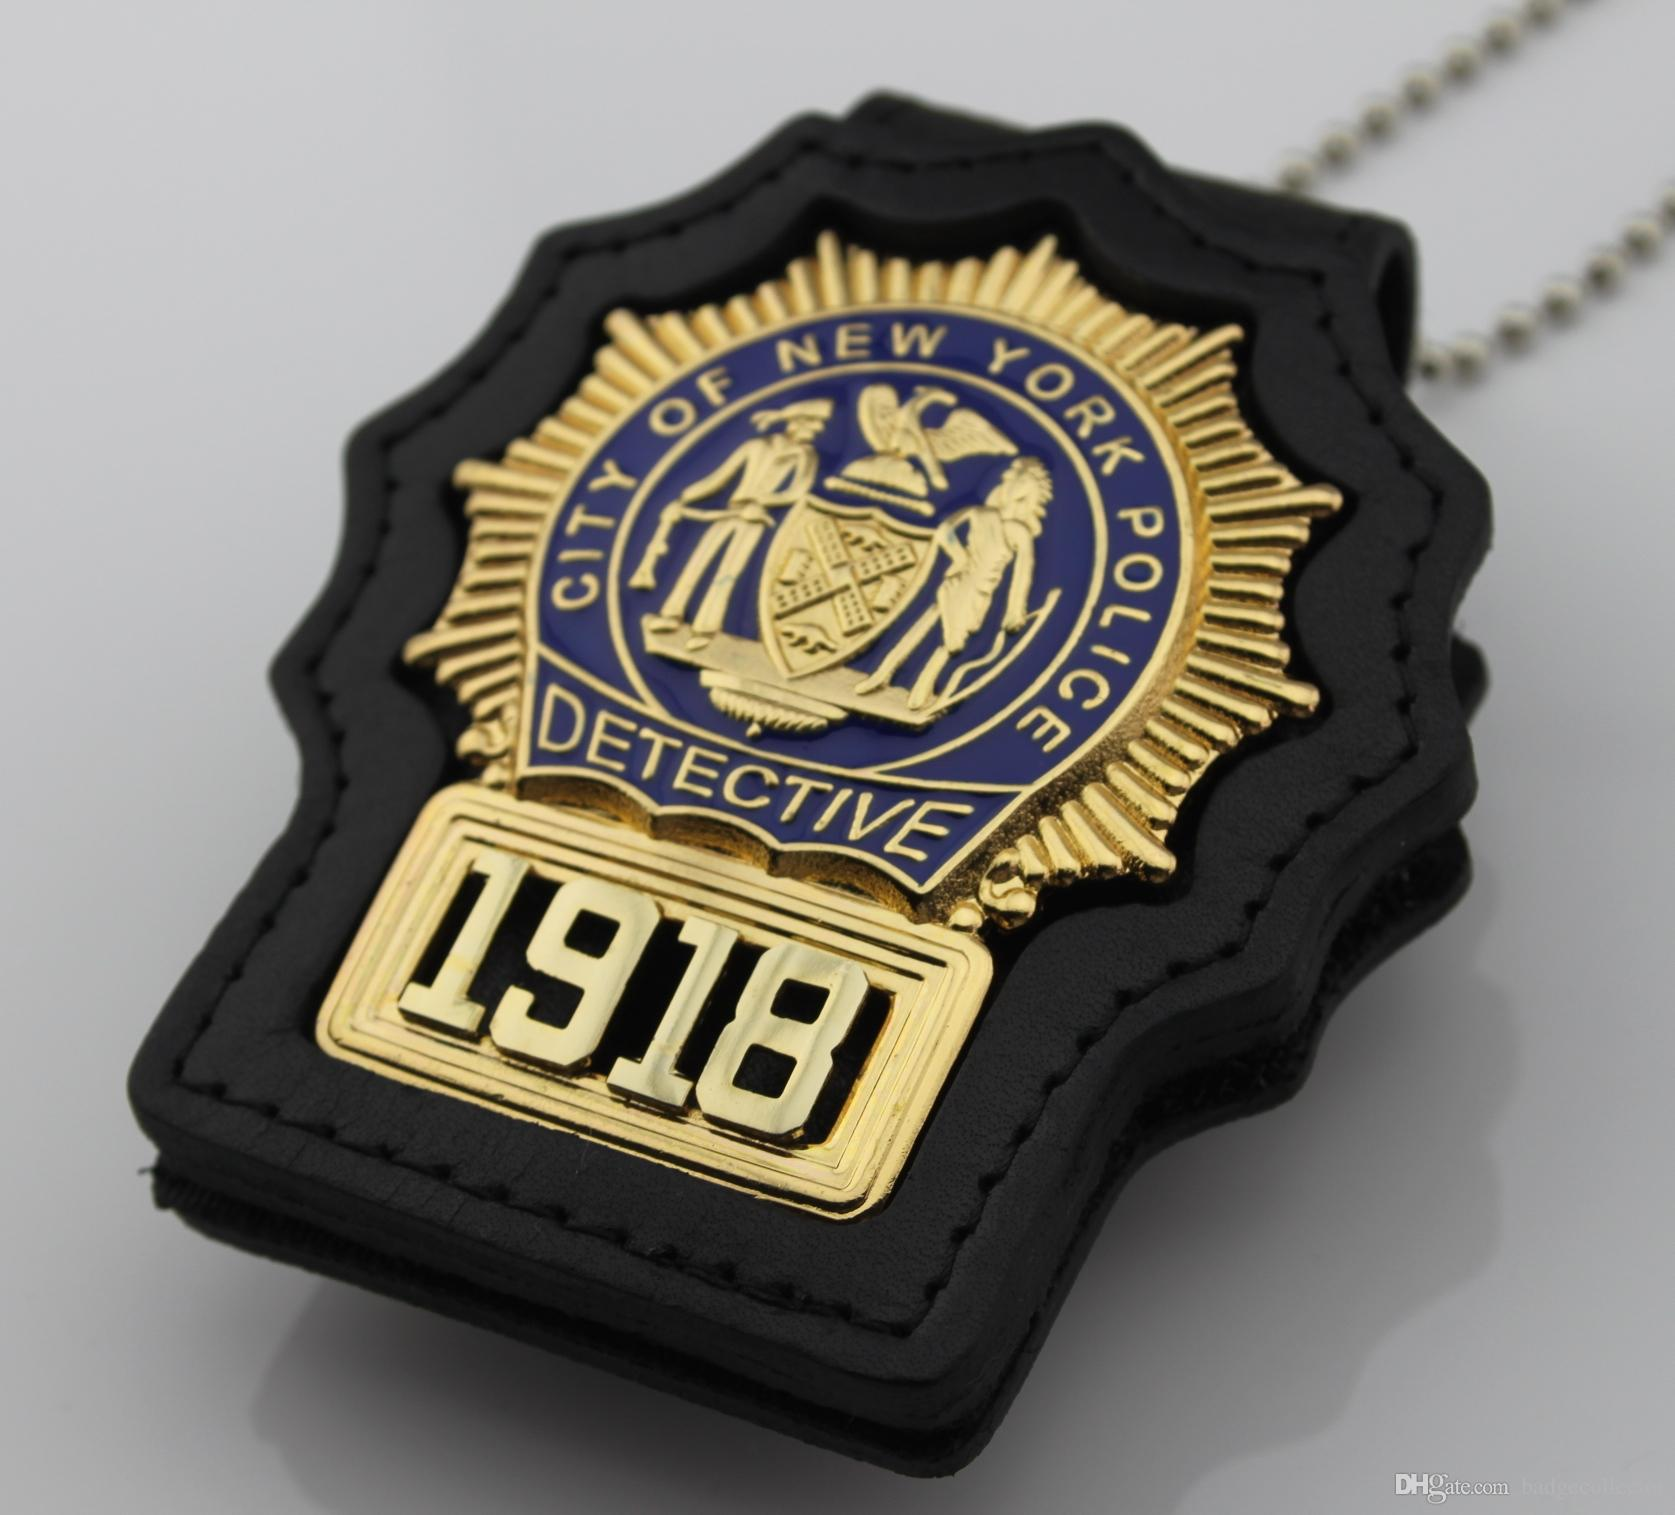 2017 insignia badges and patches collection nypd detective replica